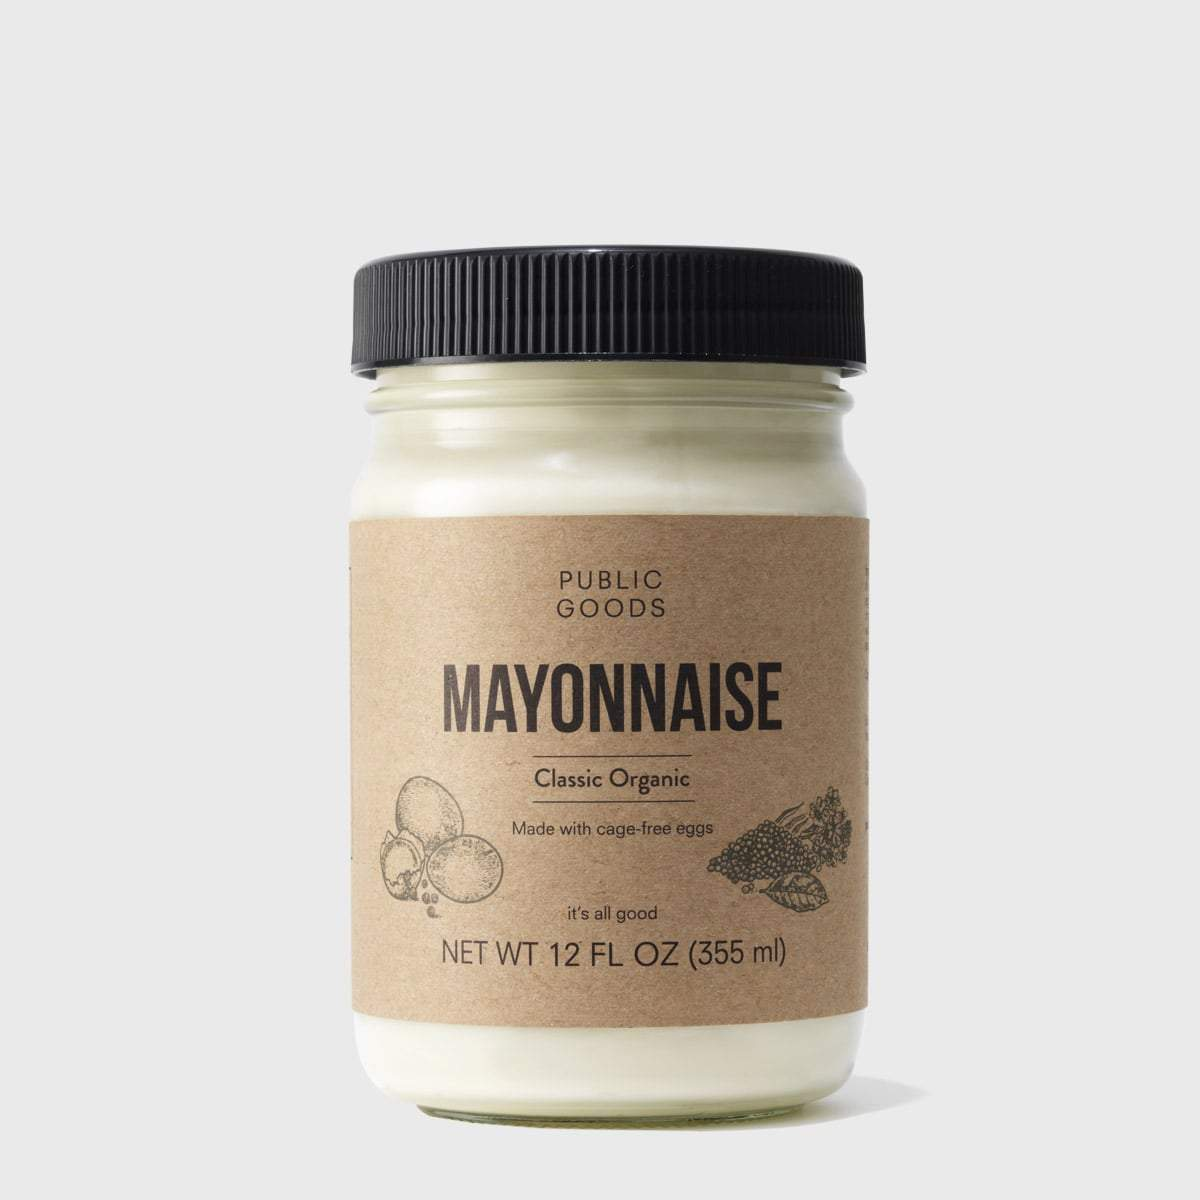 Public Goods Grocery Mayonnaise